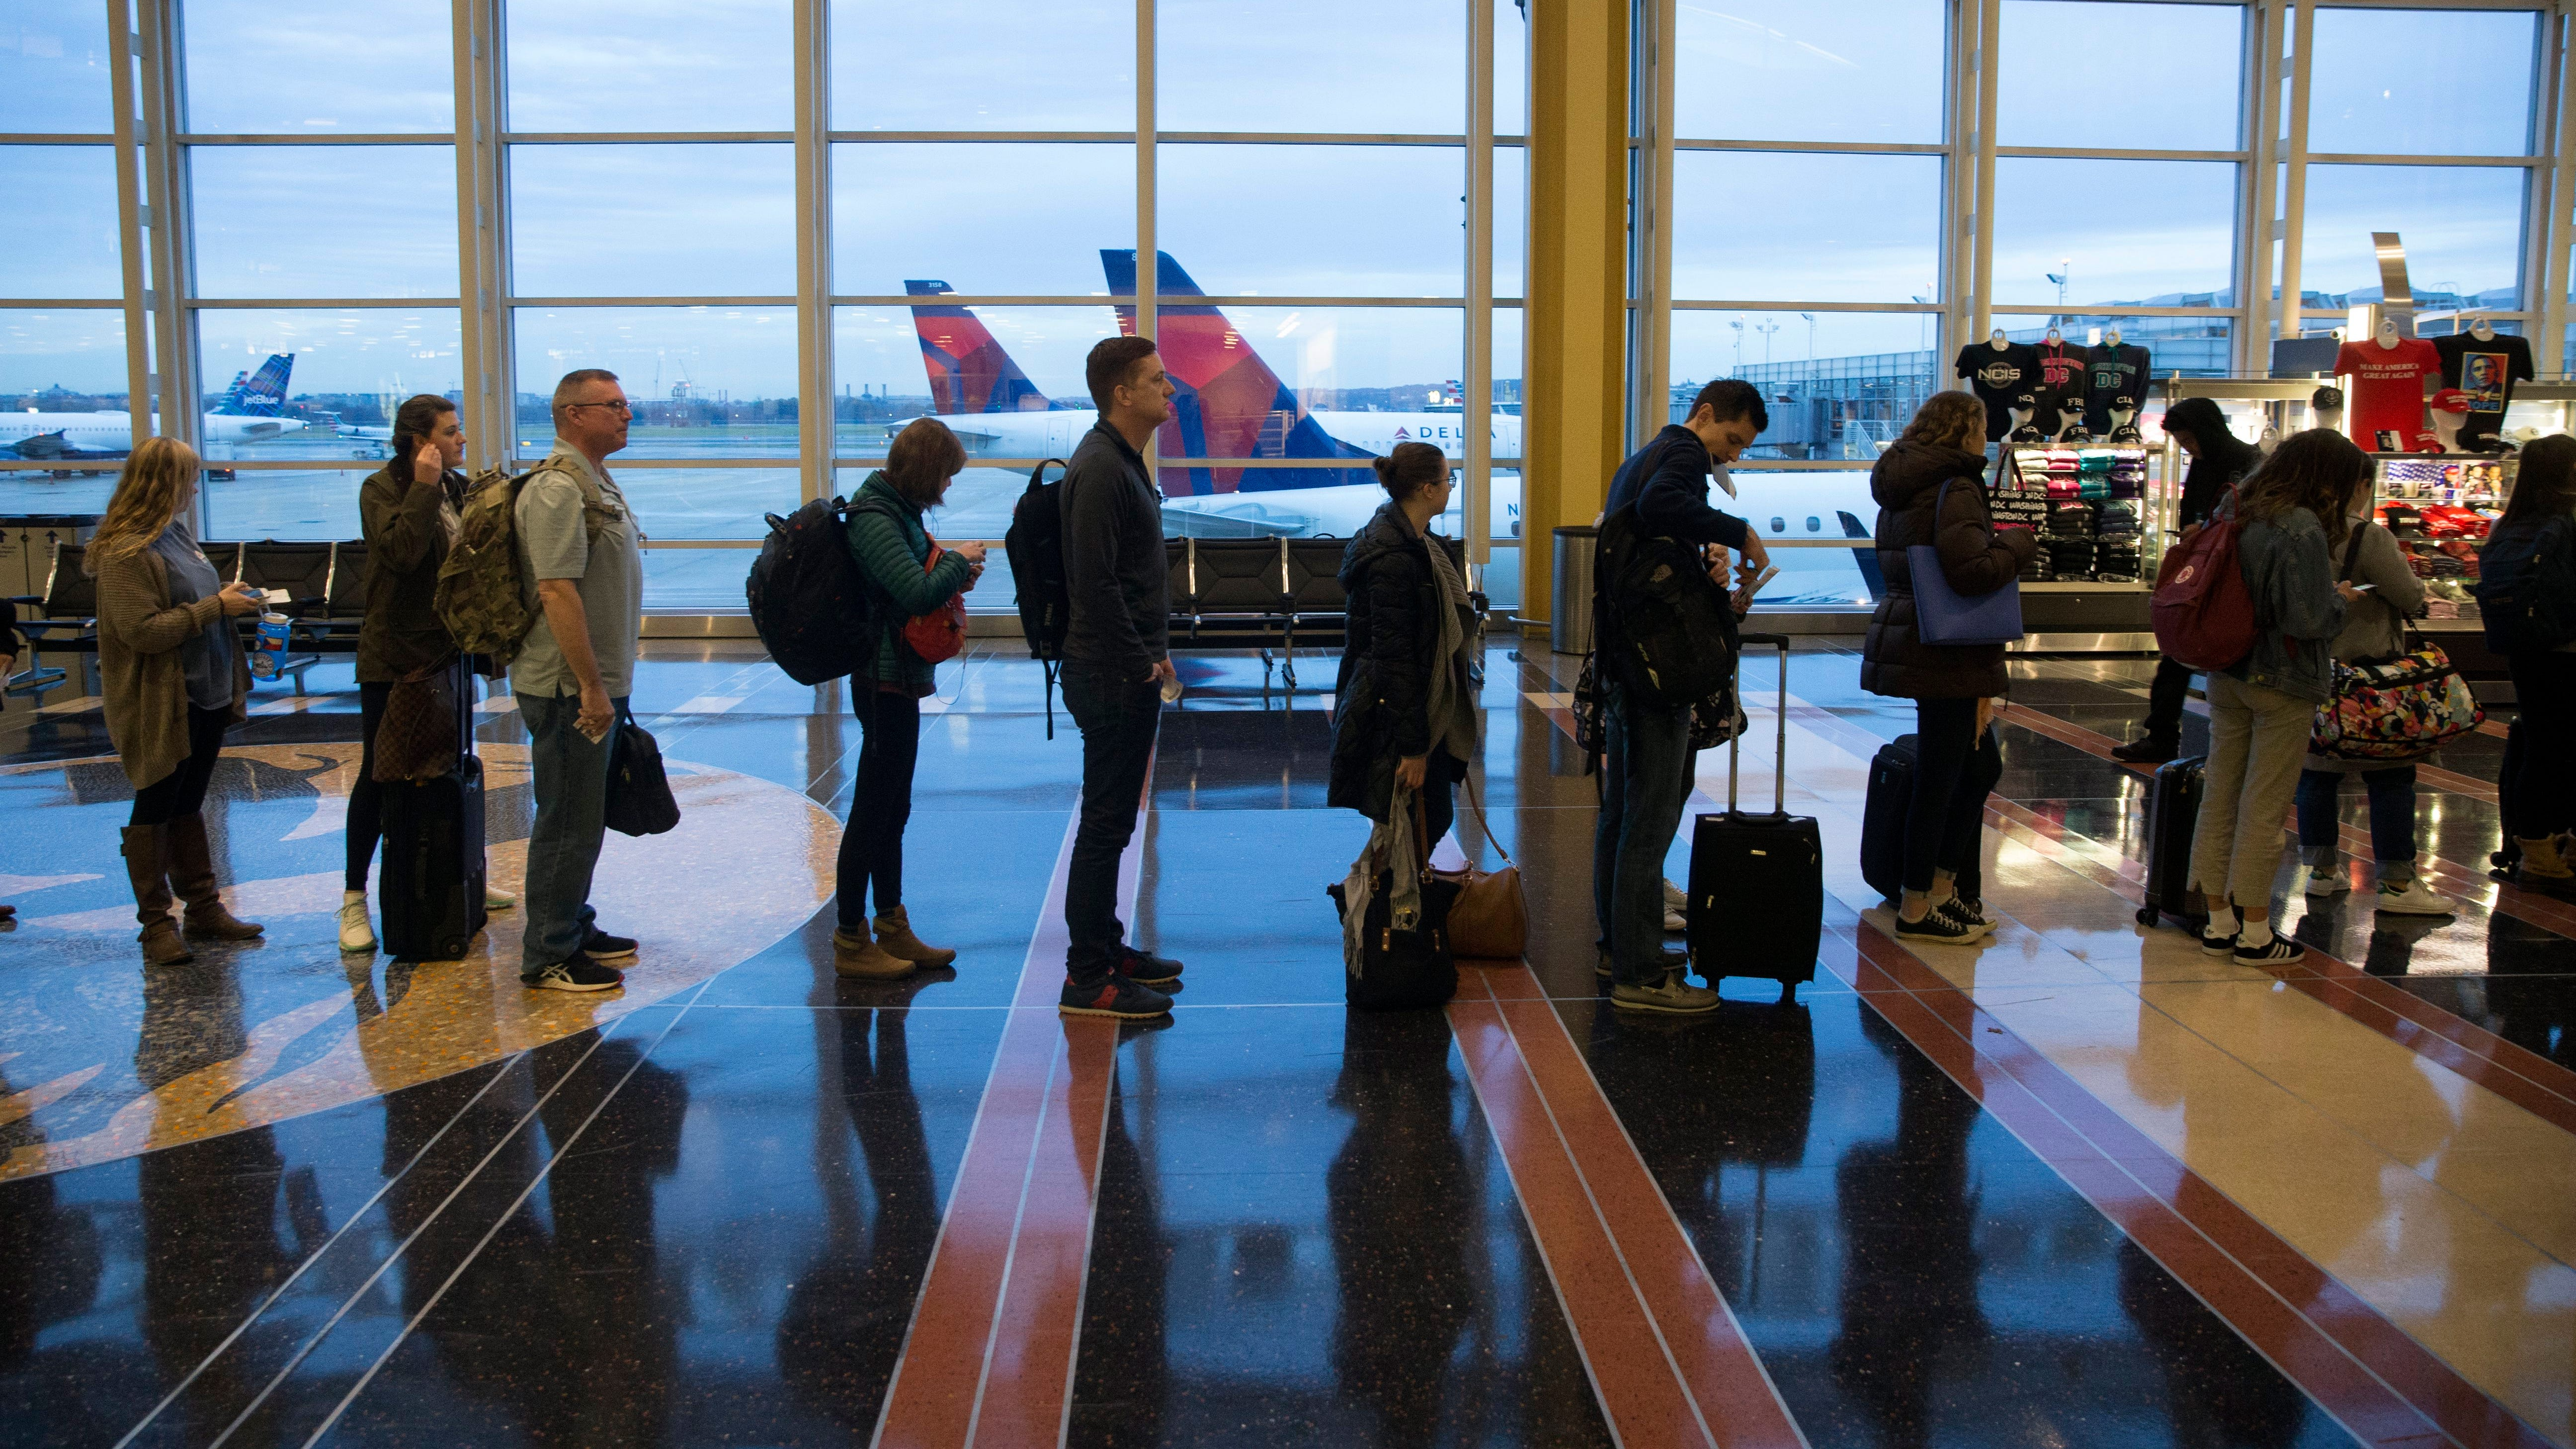 Travelers wait to go through security at Ronald Reagan Washington National Airport on Nov. 22, 2017.